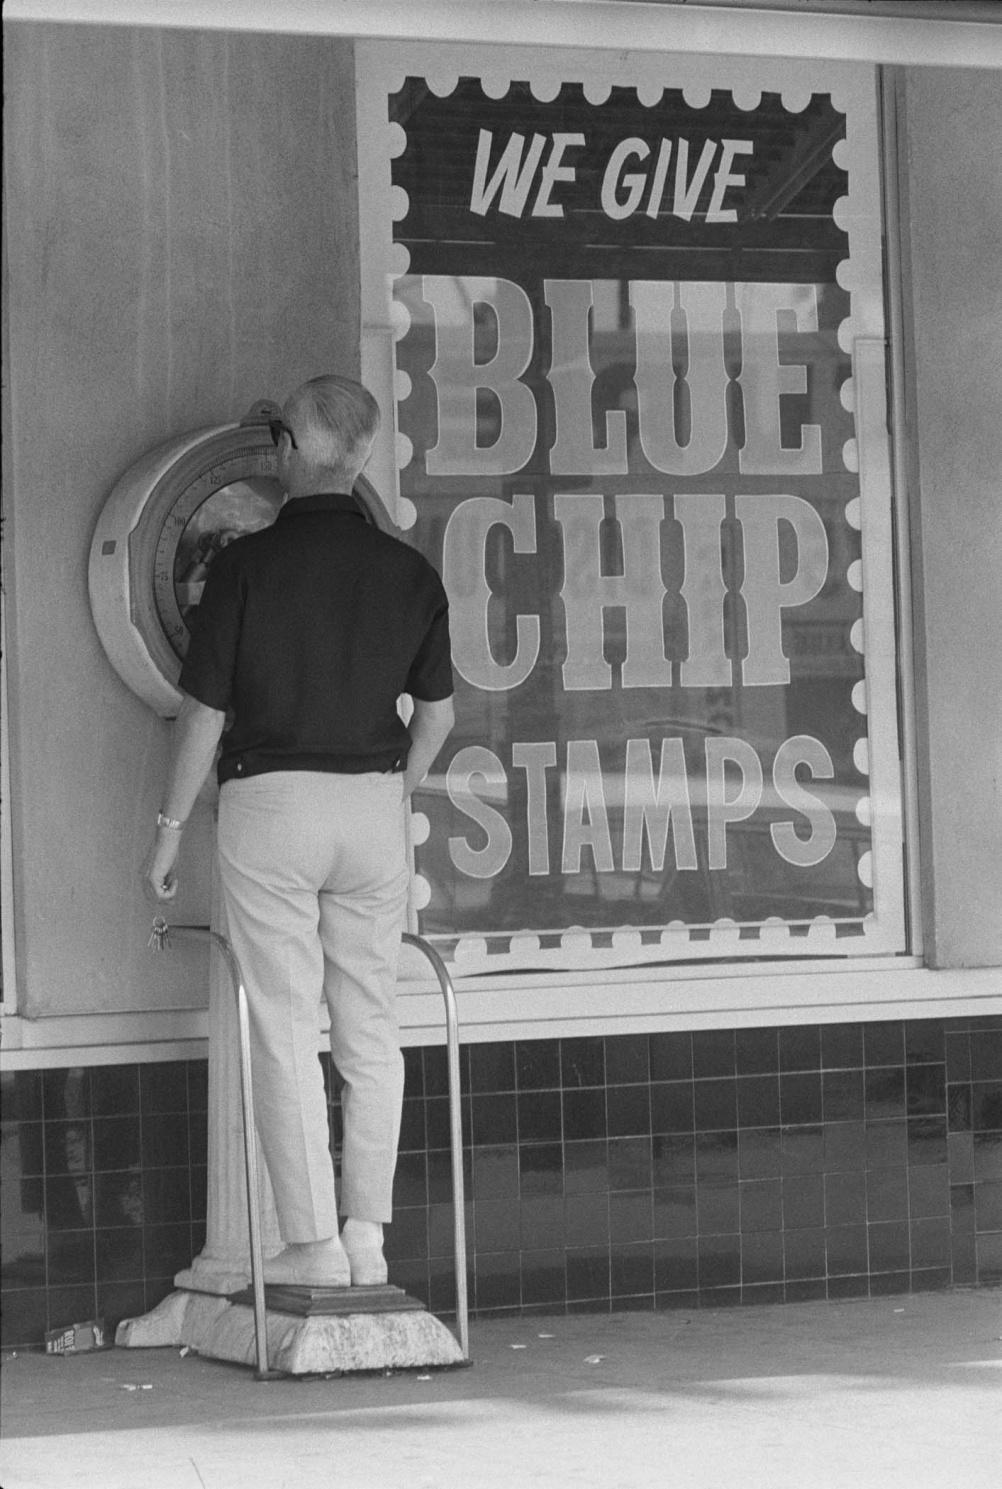 Dennis Hopper Untitled (Blue Chip Stamps), 1961-67 Photograph, 24.97 x 17.12 cm The Hopper Art Trust